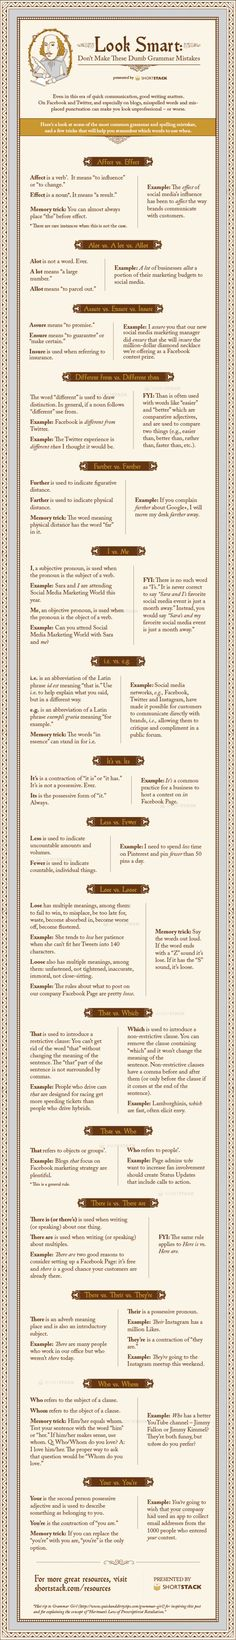 How to on Grammar: Affect/Effect, Alot/A lot/Allot, Assure/Ensure/Insure… Writing Advice, Writing Resources, Teaching Writing, Writing Help, Writing Skills, Teaching English, Writing Prompts, English Writing, Writing Services